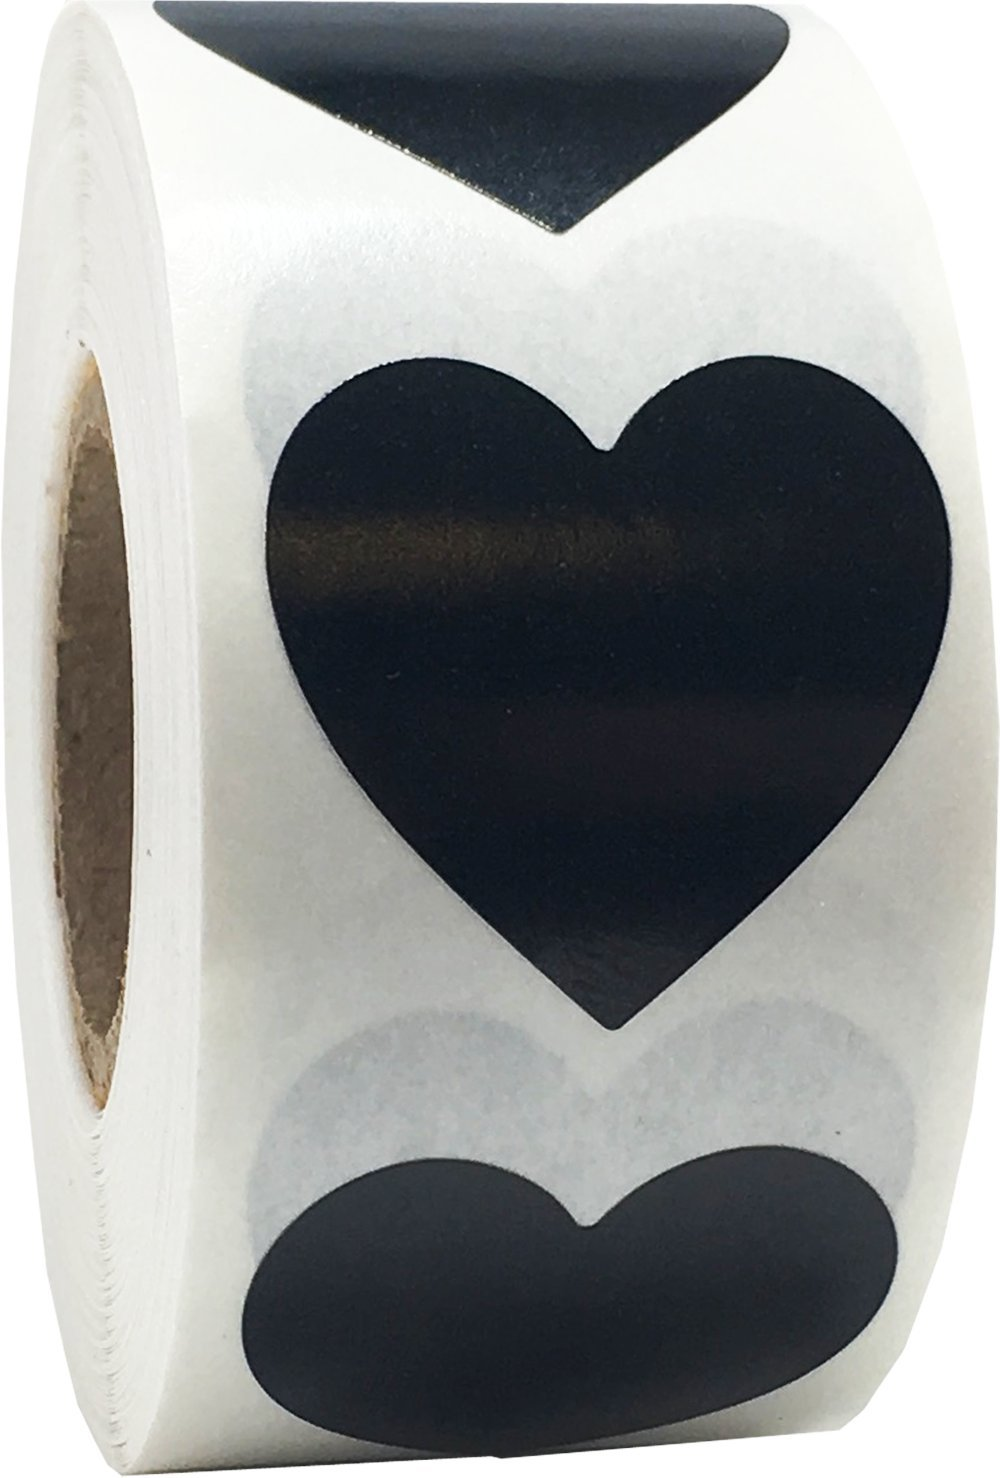 Black Heart Stickers, 1 Inch in Size, 500 Labels on a Roll